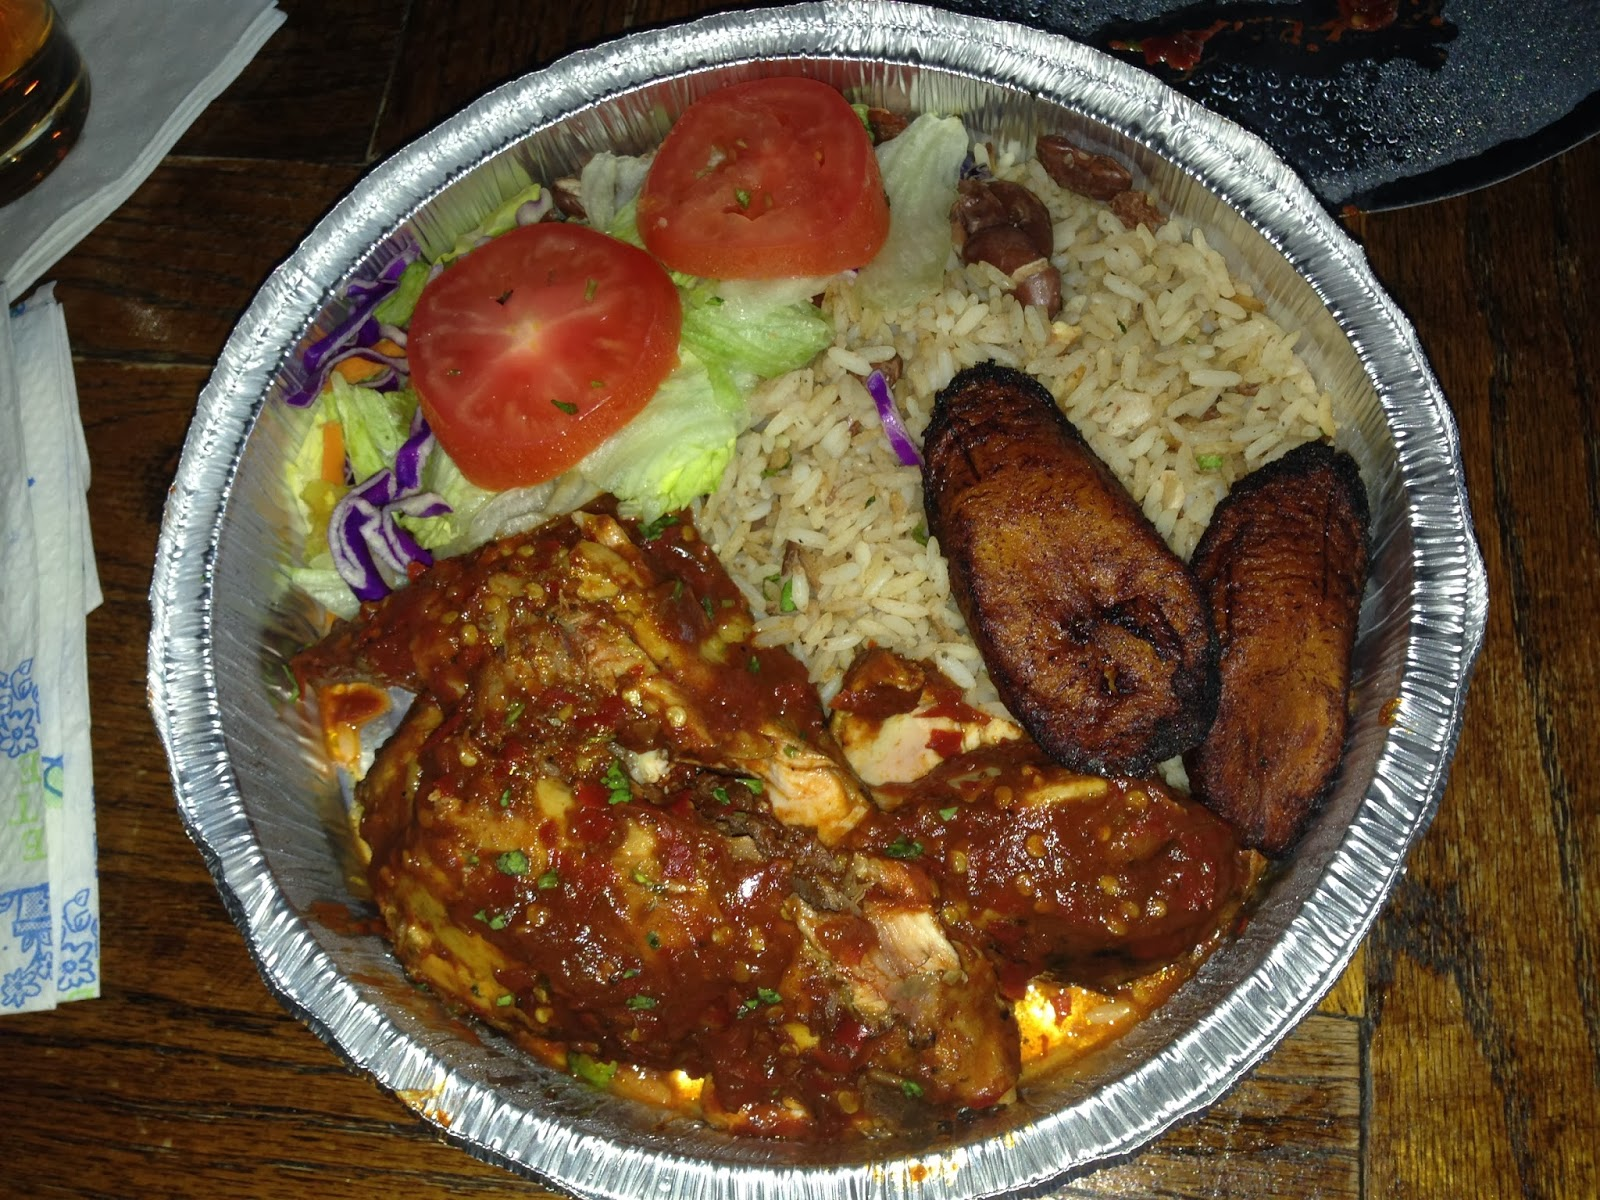 Blaze it Up! Houston TX, Reggae Plate with Jerk Chicken and Rice and Peas